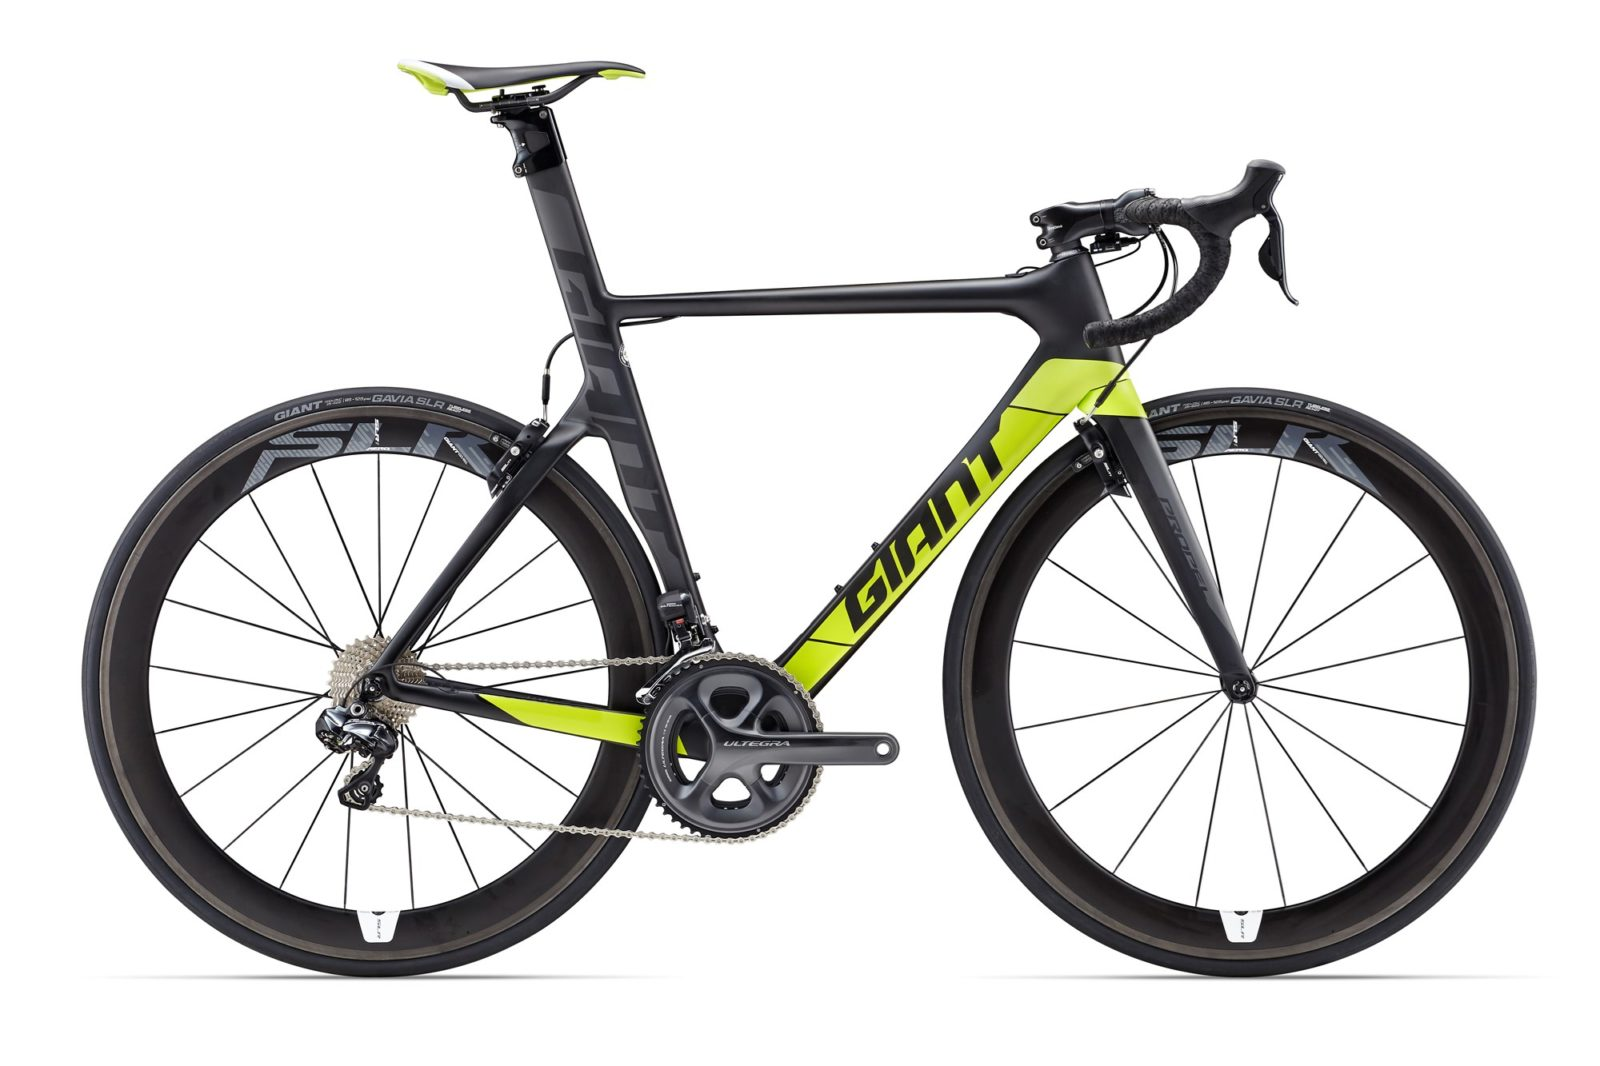 GIANT Rennrad Propel Advanced SL 1 2017